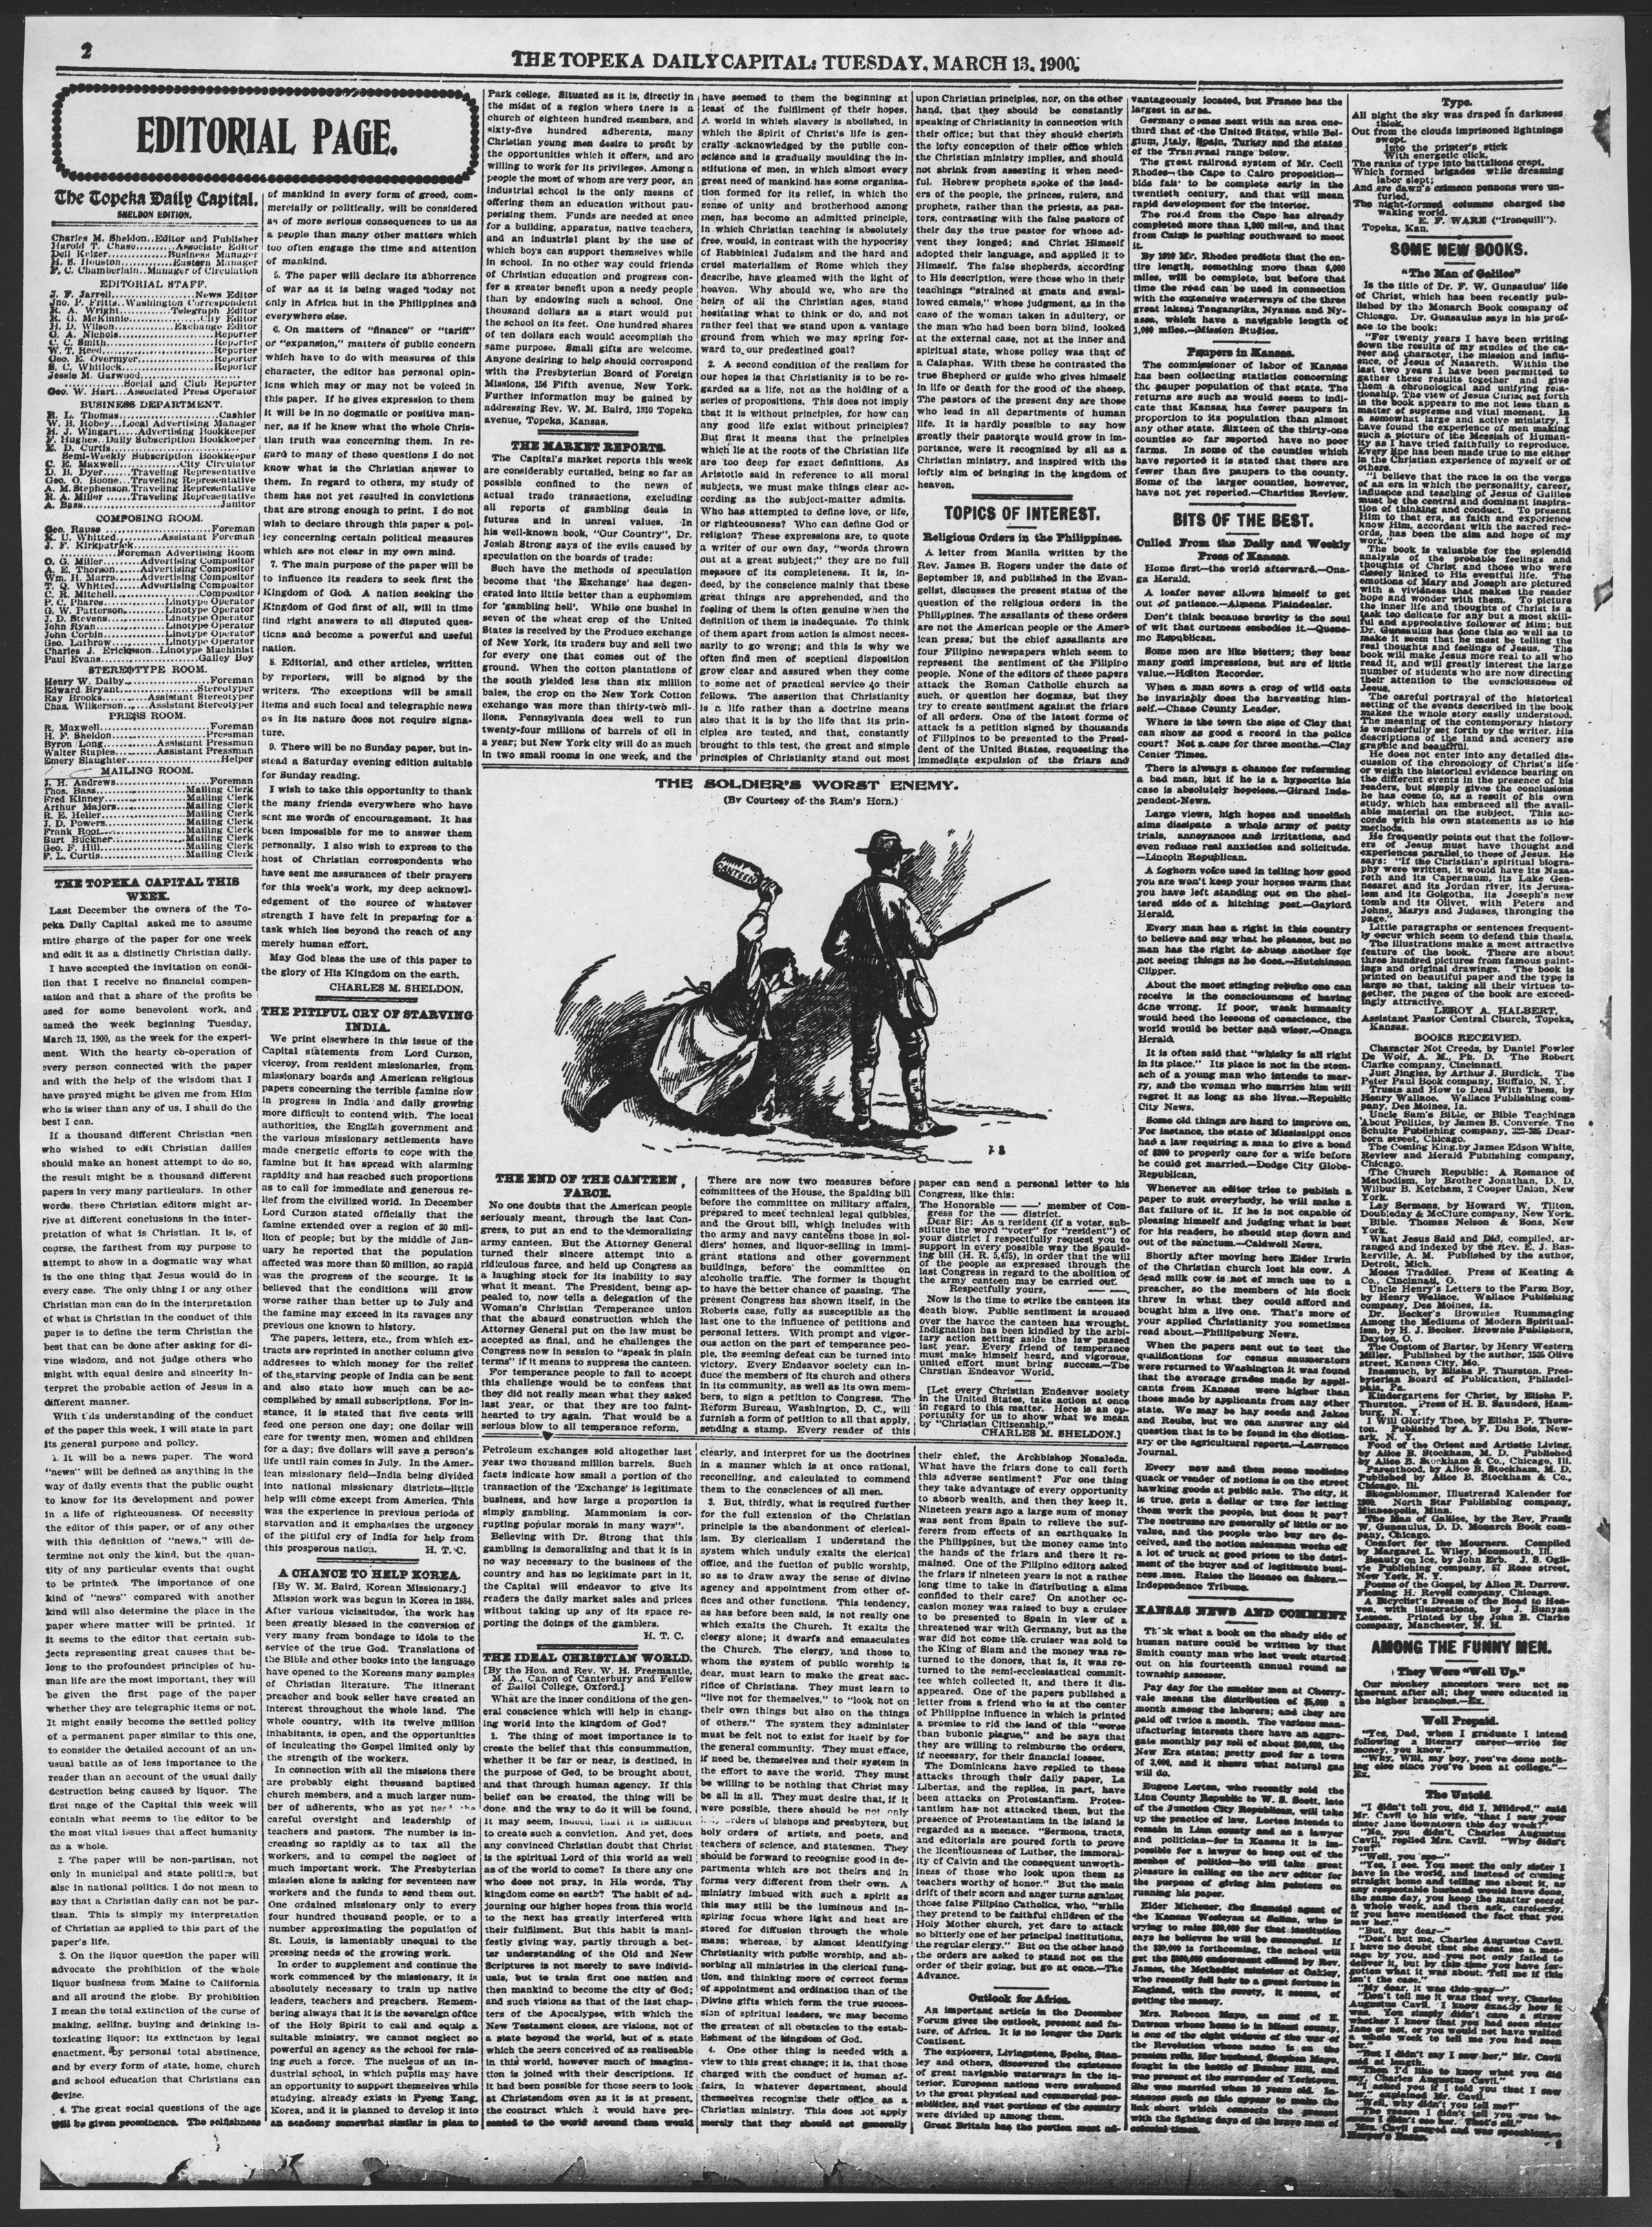 The Topeka daily capital. Sheldon edition - 2, Tuesday, March 13, 1900